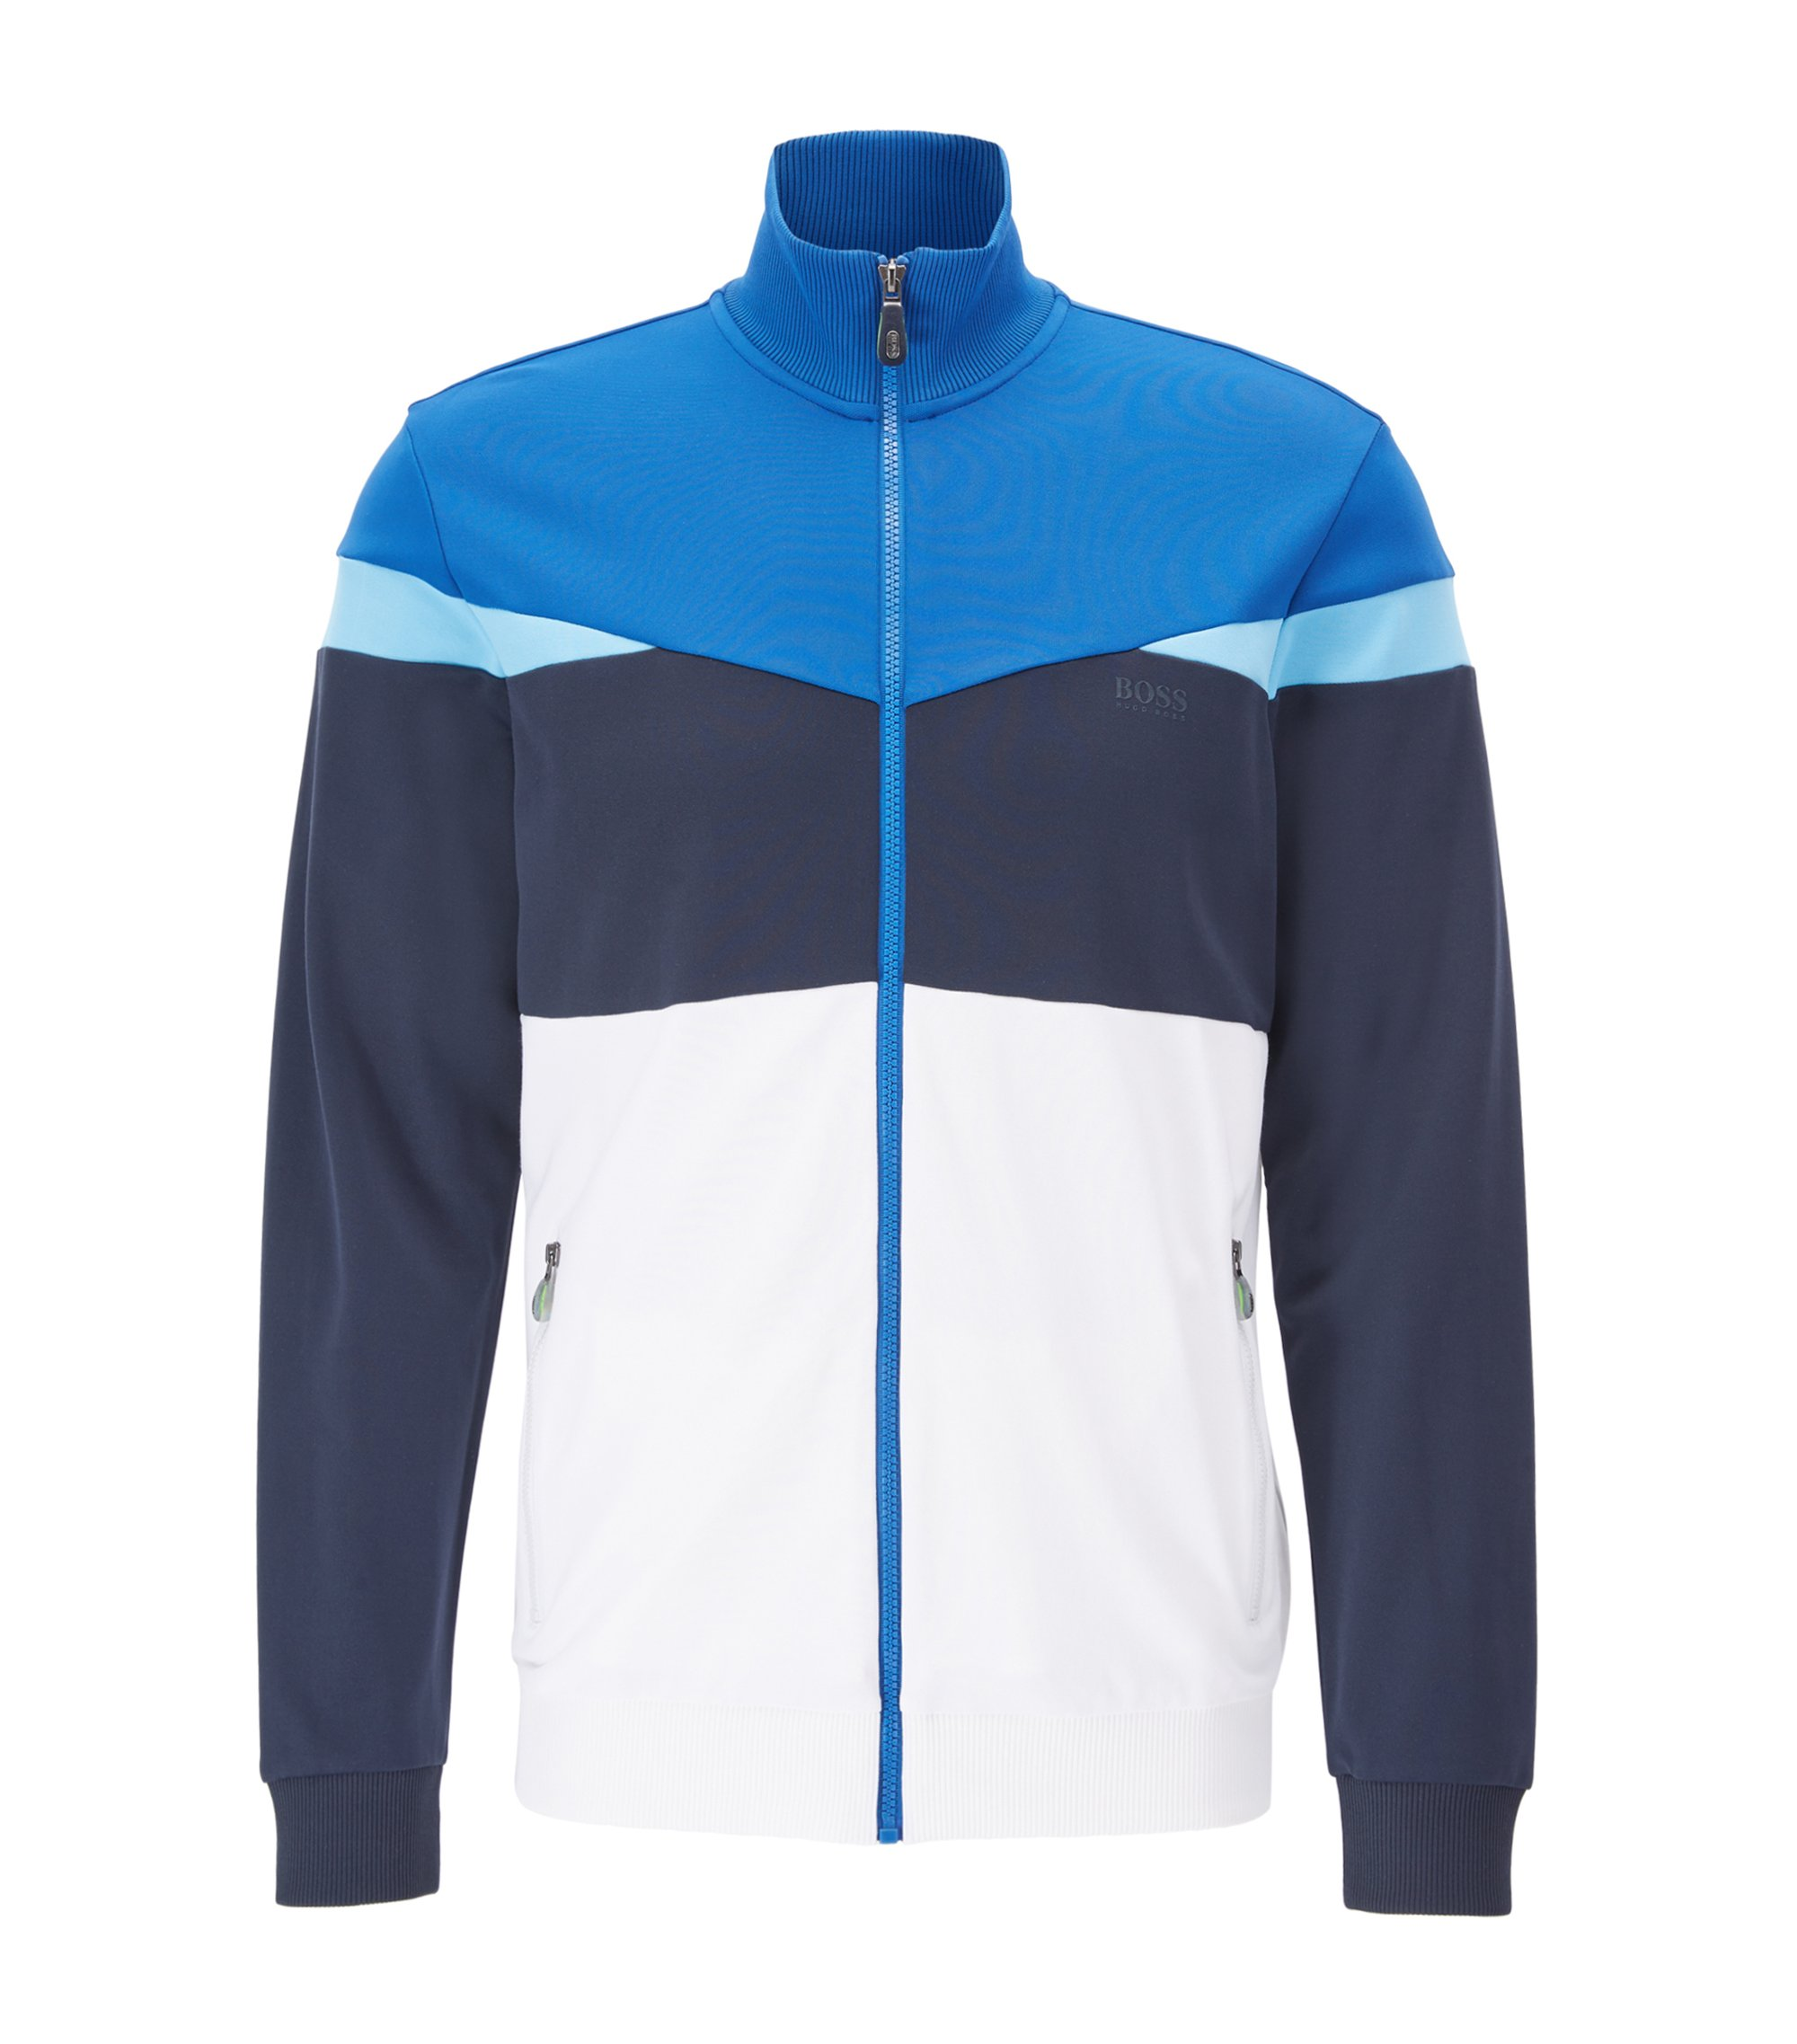 Colorblocked Field Jacket | Sharley, White